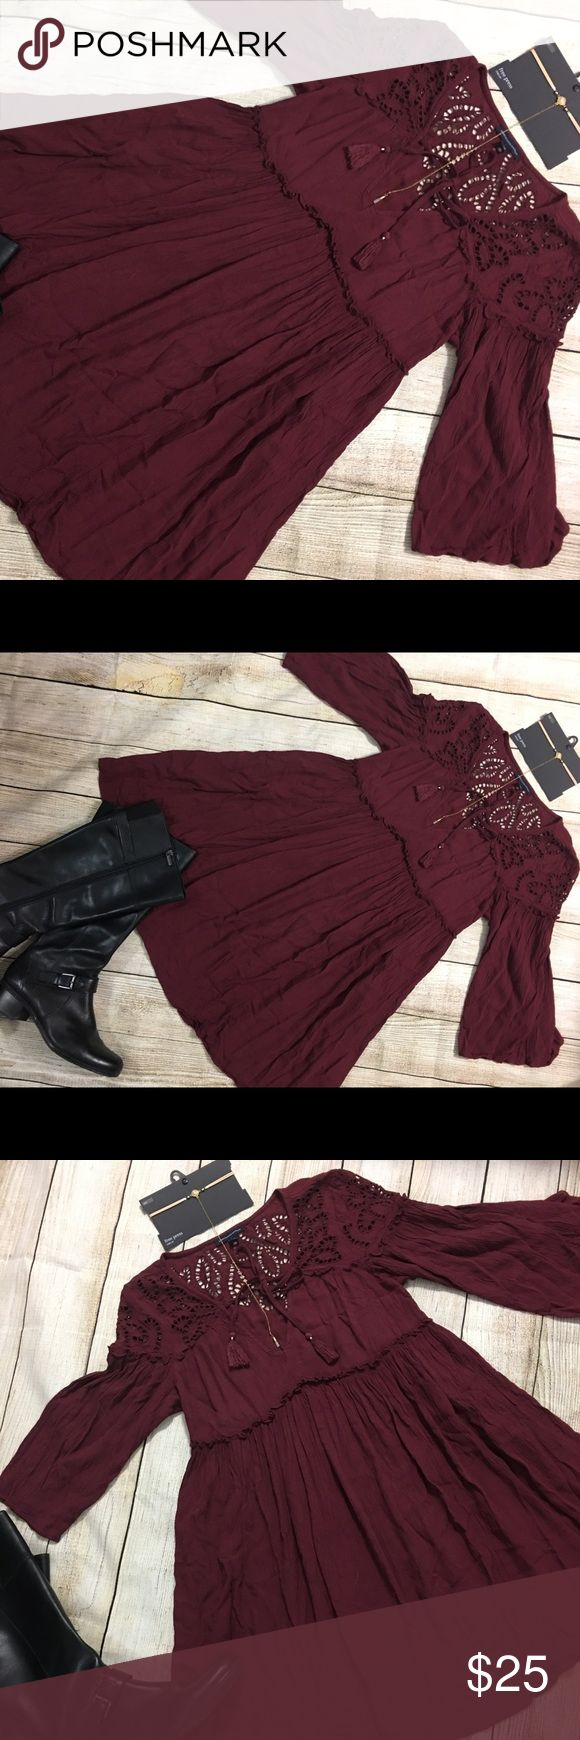 """Ladies American Eagle 🦅  Boho Dress Large EUC 🍂Great Fall Color Boho Style Dress from American Eagle 🦅 EUC Looks New! Chest measures 19"""" across and 34"""" In Length. Tassel ties at neck , elastic waist , very flowy . Looks great with leggings and boots . Make an offer🍂 American Eagle Outfitters Dresses Long Sleeve"""